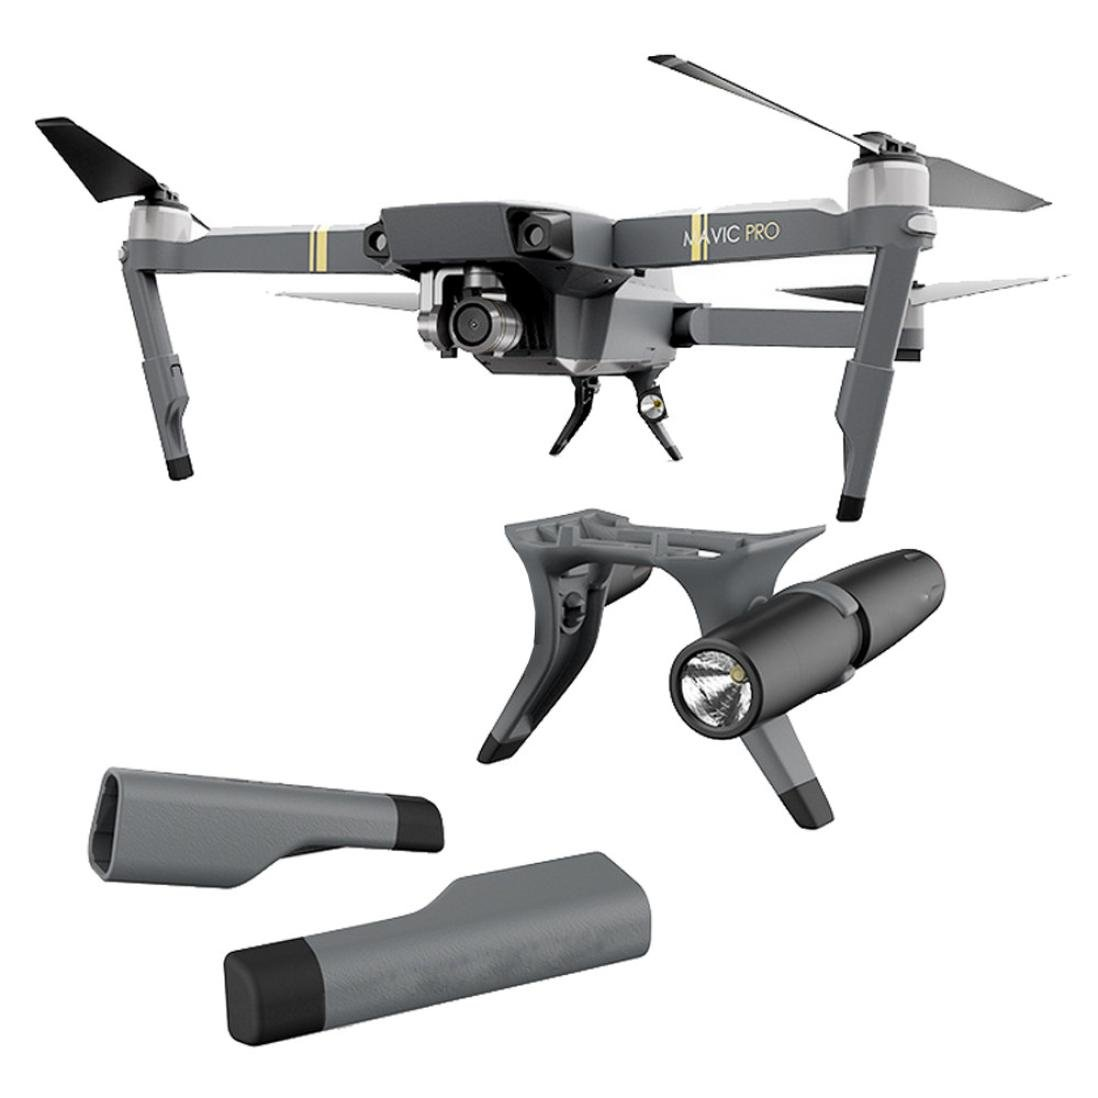 Creazy PGY新しい拡張Landing Gear拡張子with LEDヘッドランプセットfor DJI Mavic Pro B072MH6PDQ